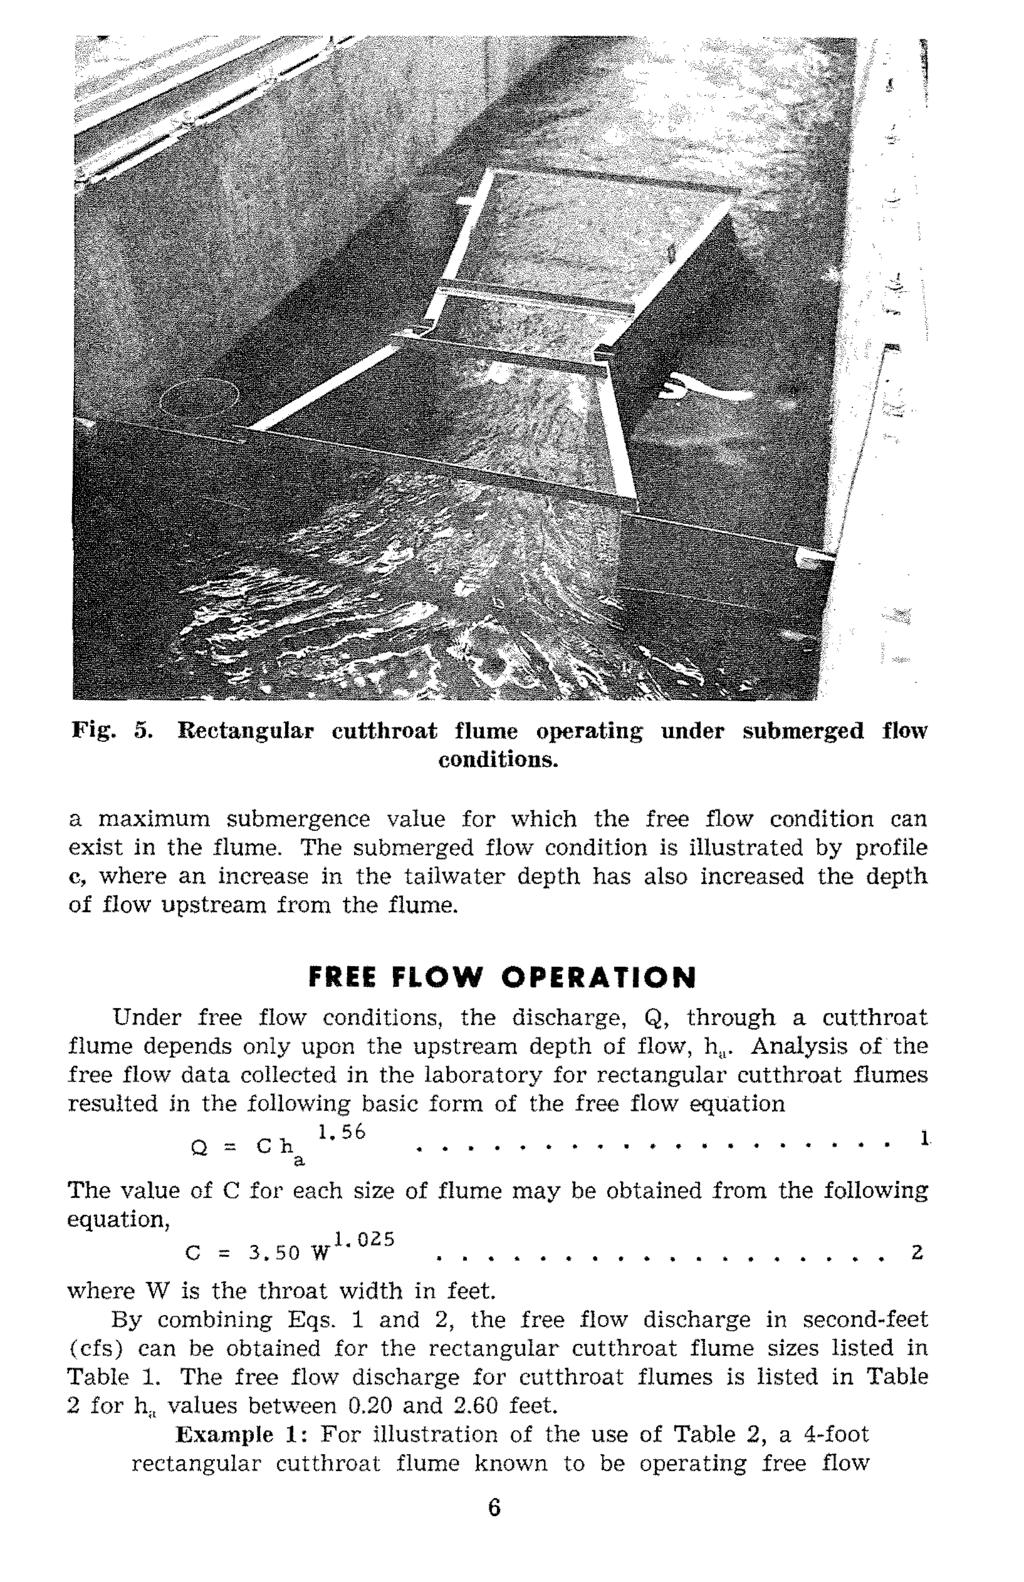 Fig. 5. Rectngulr cutthrot flume operting under submerged flow couditions. mximum submergence vlue for which the free flow condition cn exist in the flume.